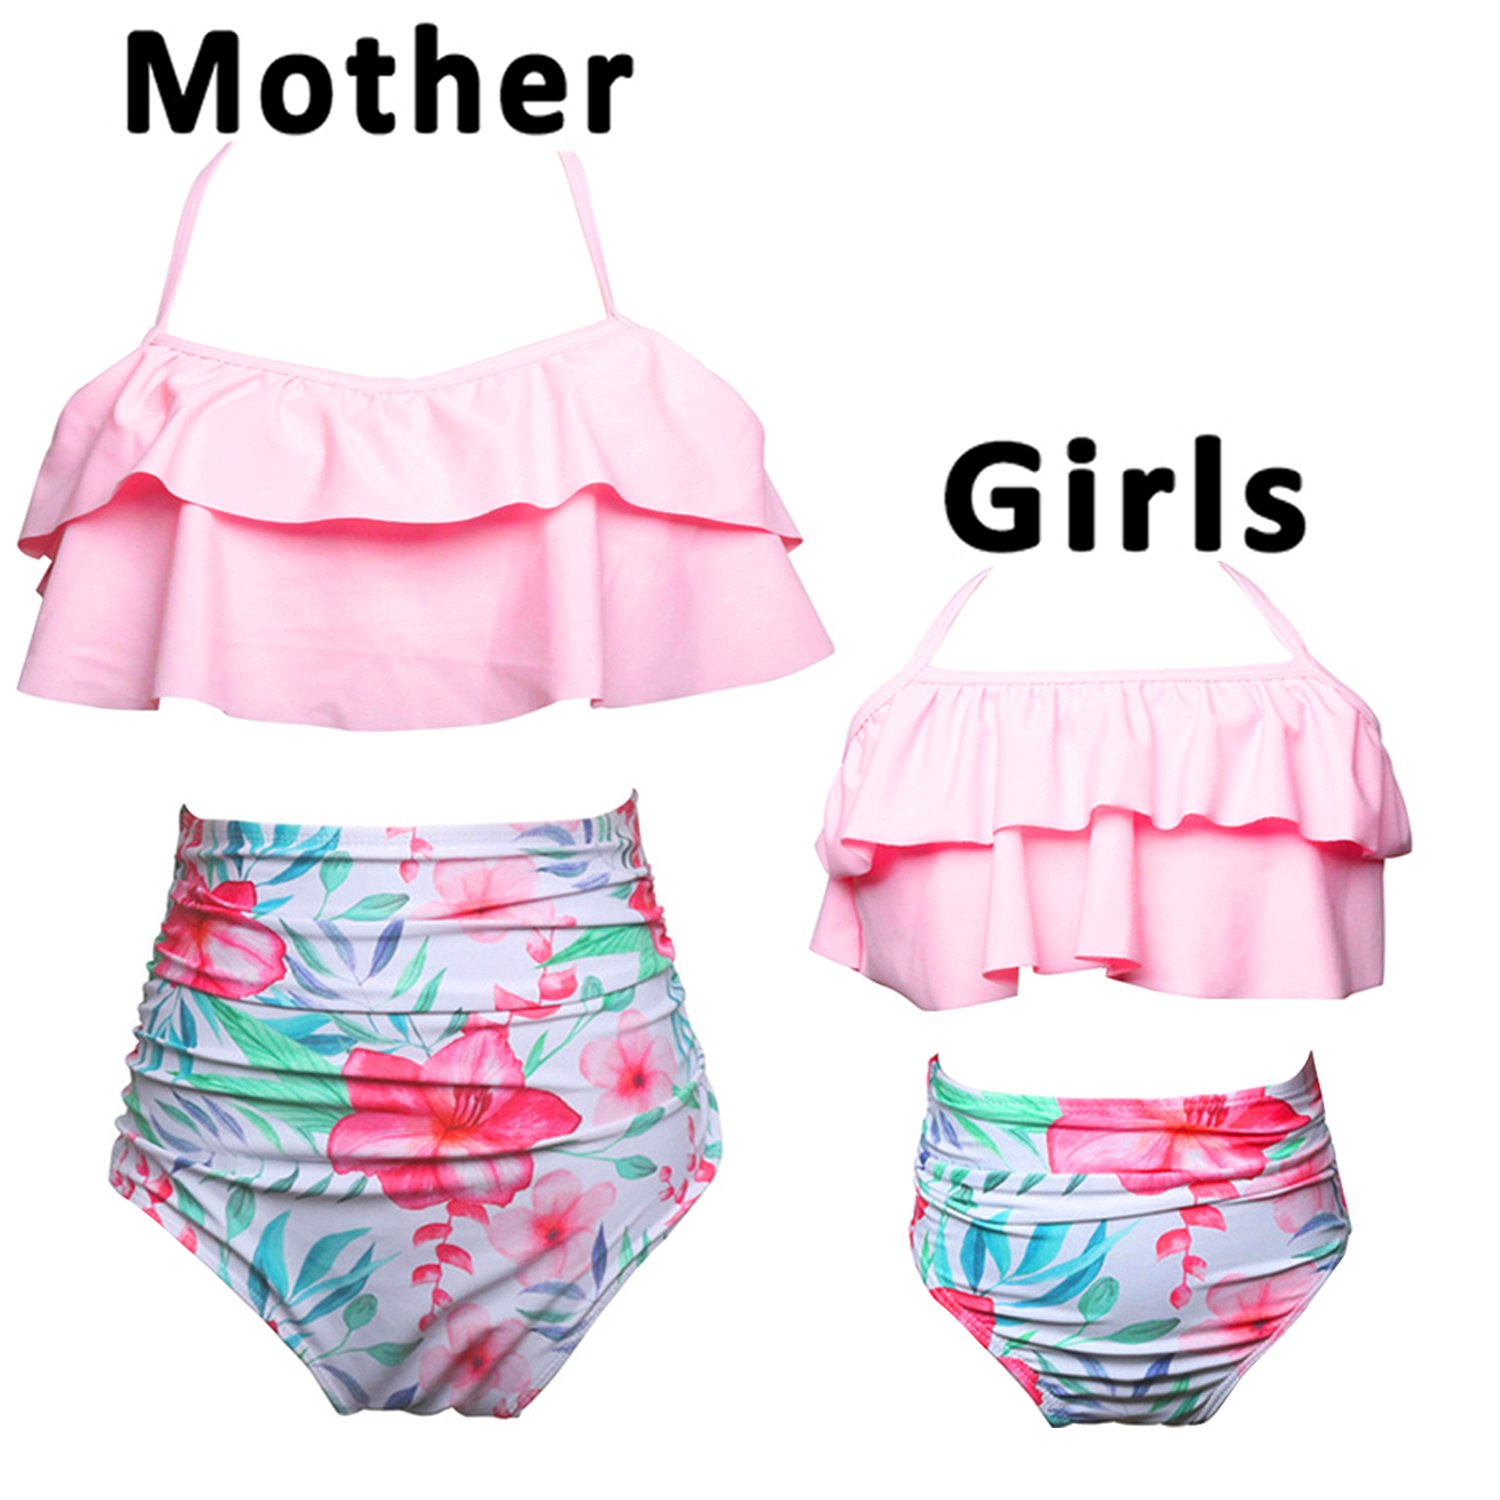 24ce8d6adb ... Bikini:1x Ruffled Bikini Top+1x High Waist Bottom. ????Women and Girls  Size: We have adult baby girls size Different colors for your choice, you  can ...